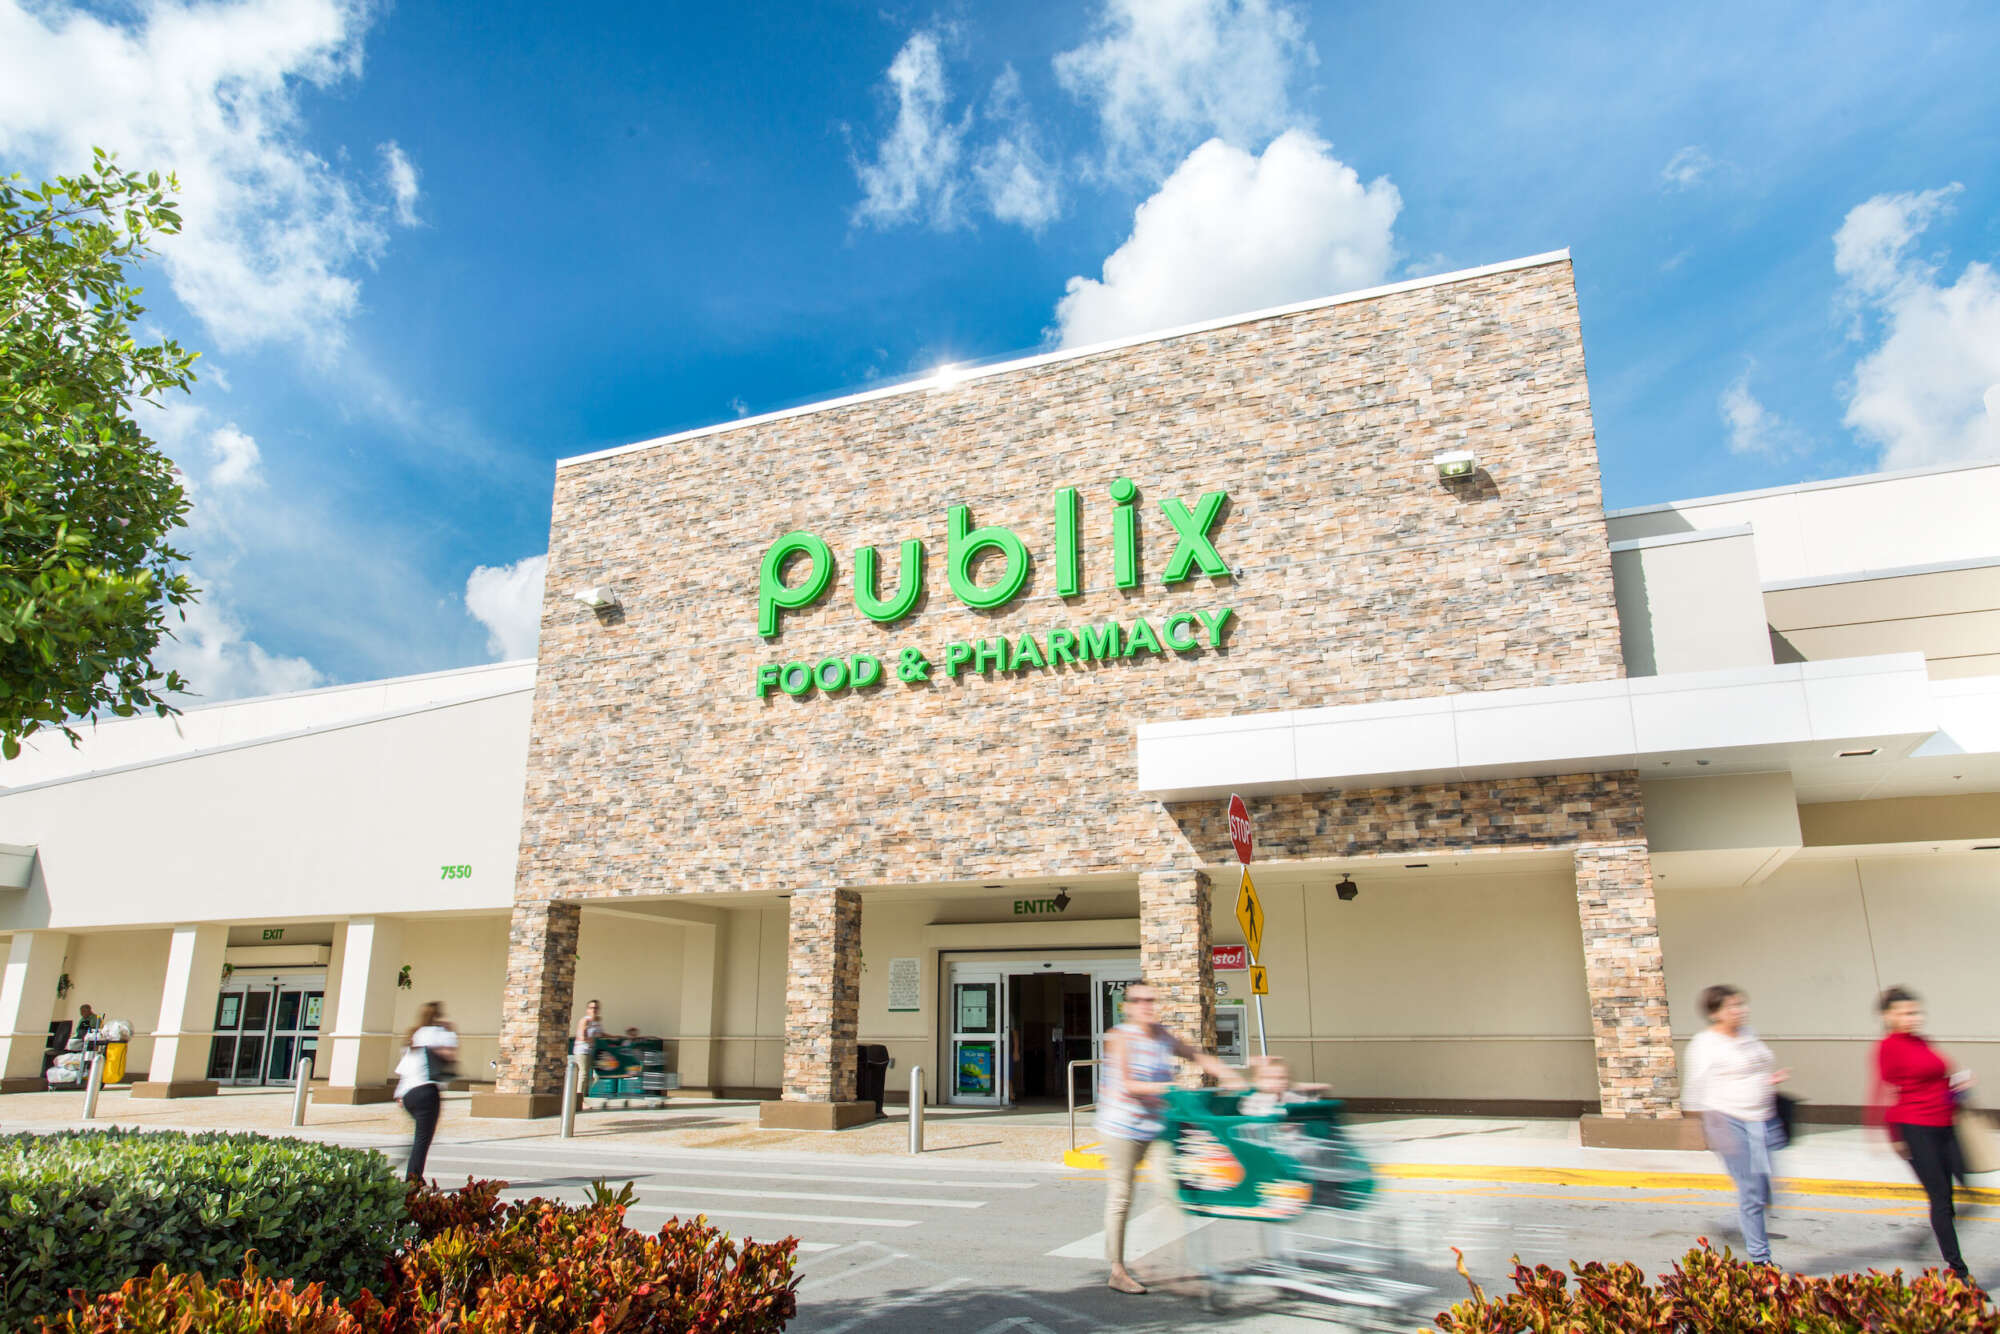 Doral Commons grocery store exterior with pedestrians crossing driveway